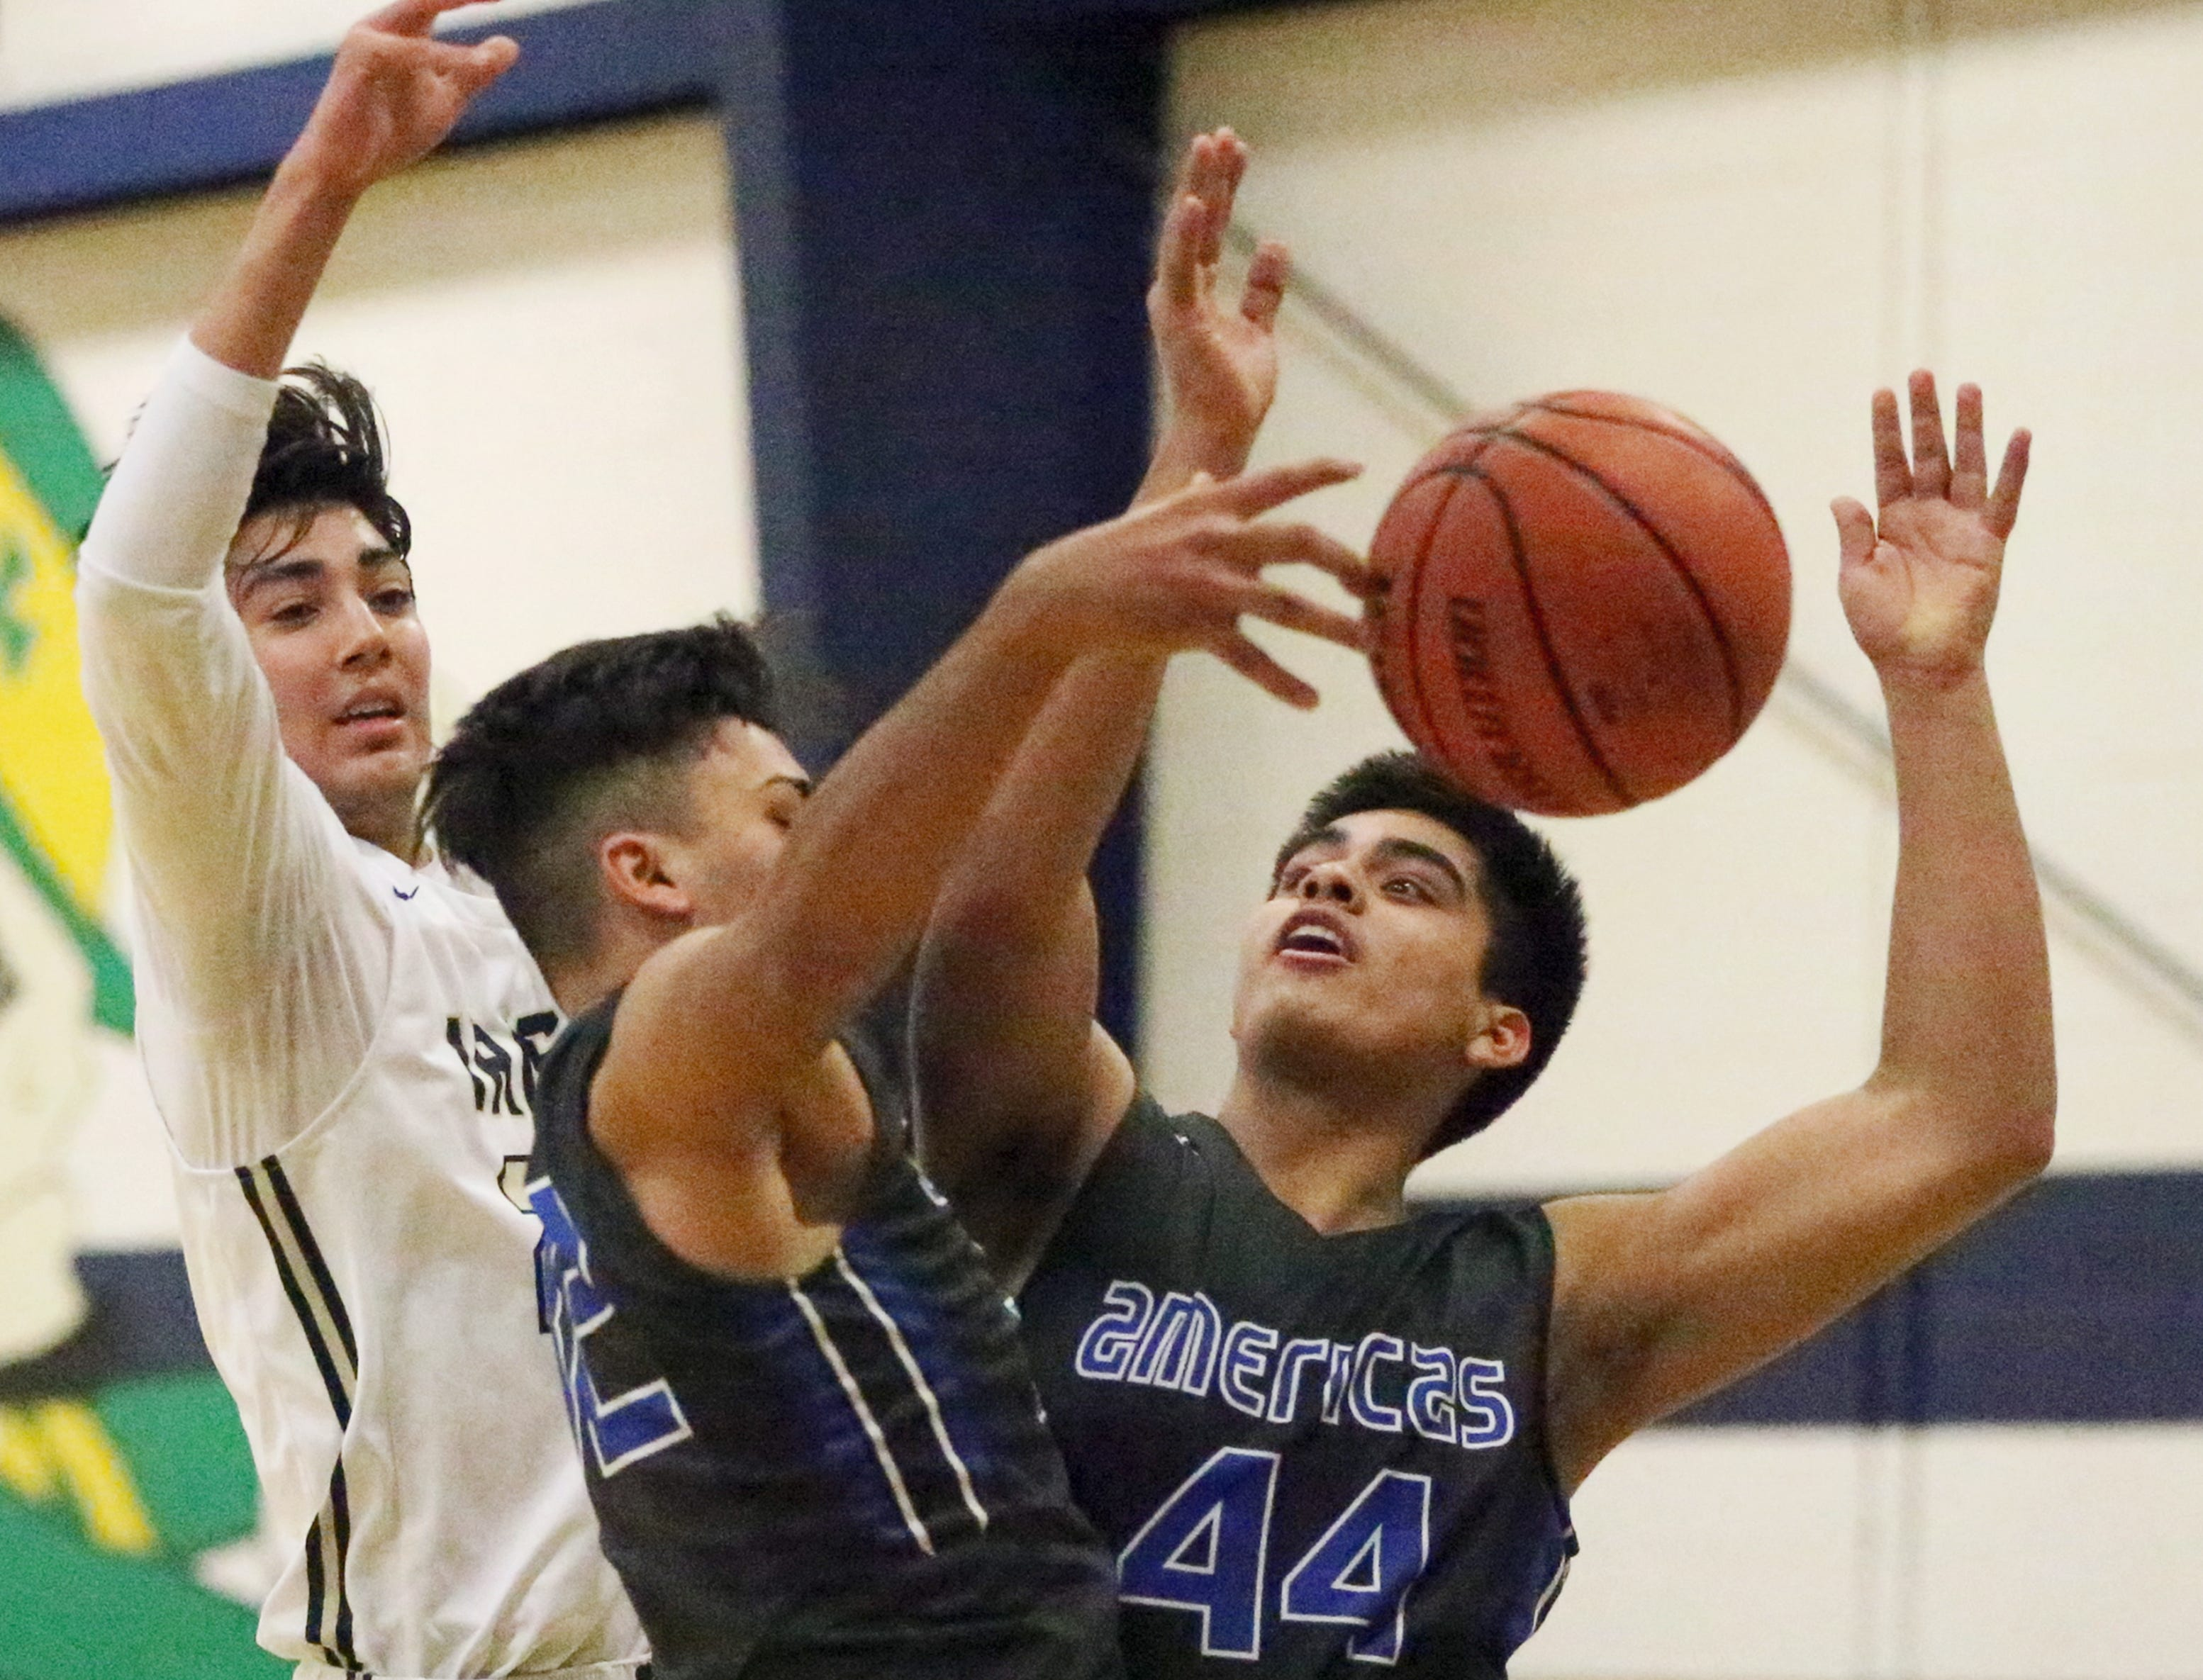 Esteban Fernandez, left, of Cathedral battles for a rebound with Christian Martinez, center, and JP Sanchez, 44, of Americas Tuesday, Nov 27 night at Cathedral.